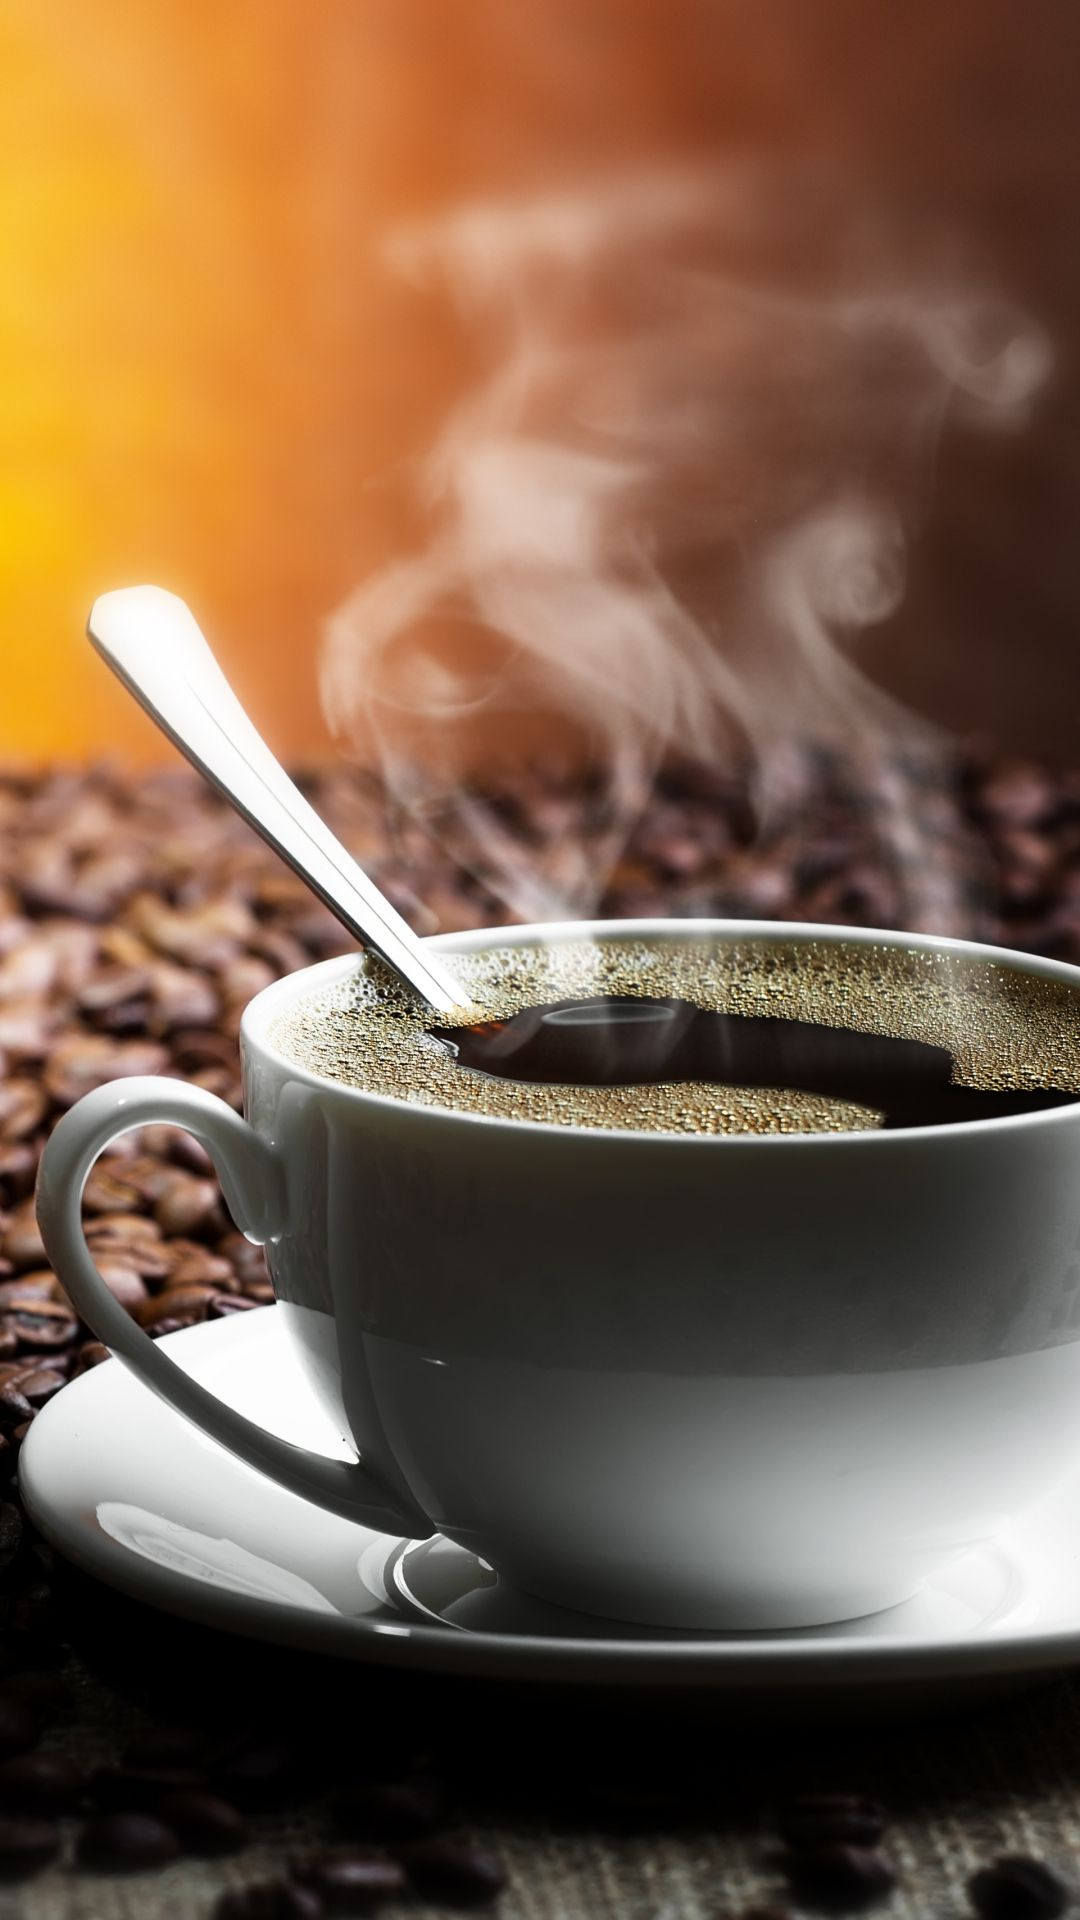 http://www.vactualpapers.com/gallery/a-cup-of-coffee-mobile-hd-wallpaper   Mobile Wallpapers ...